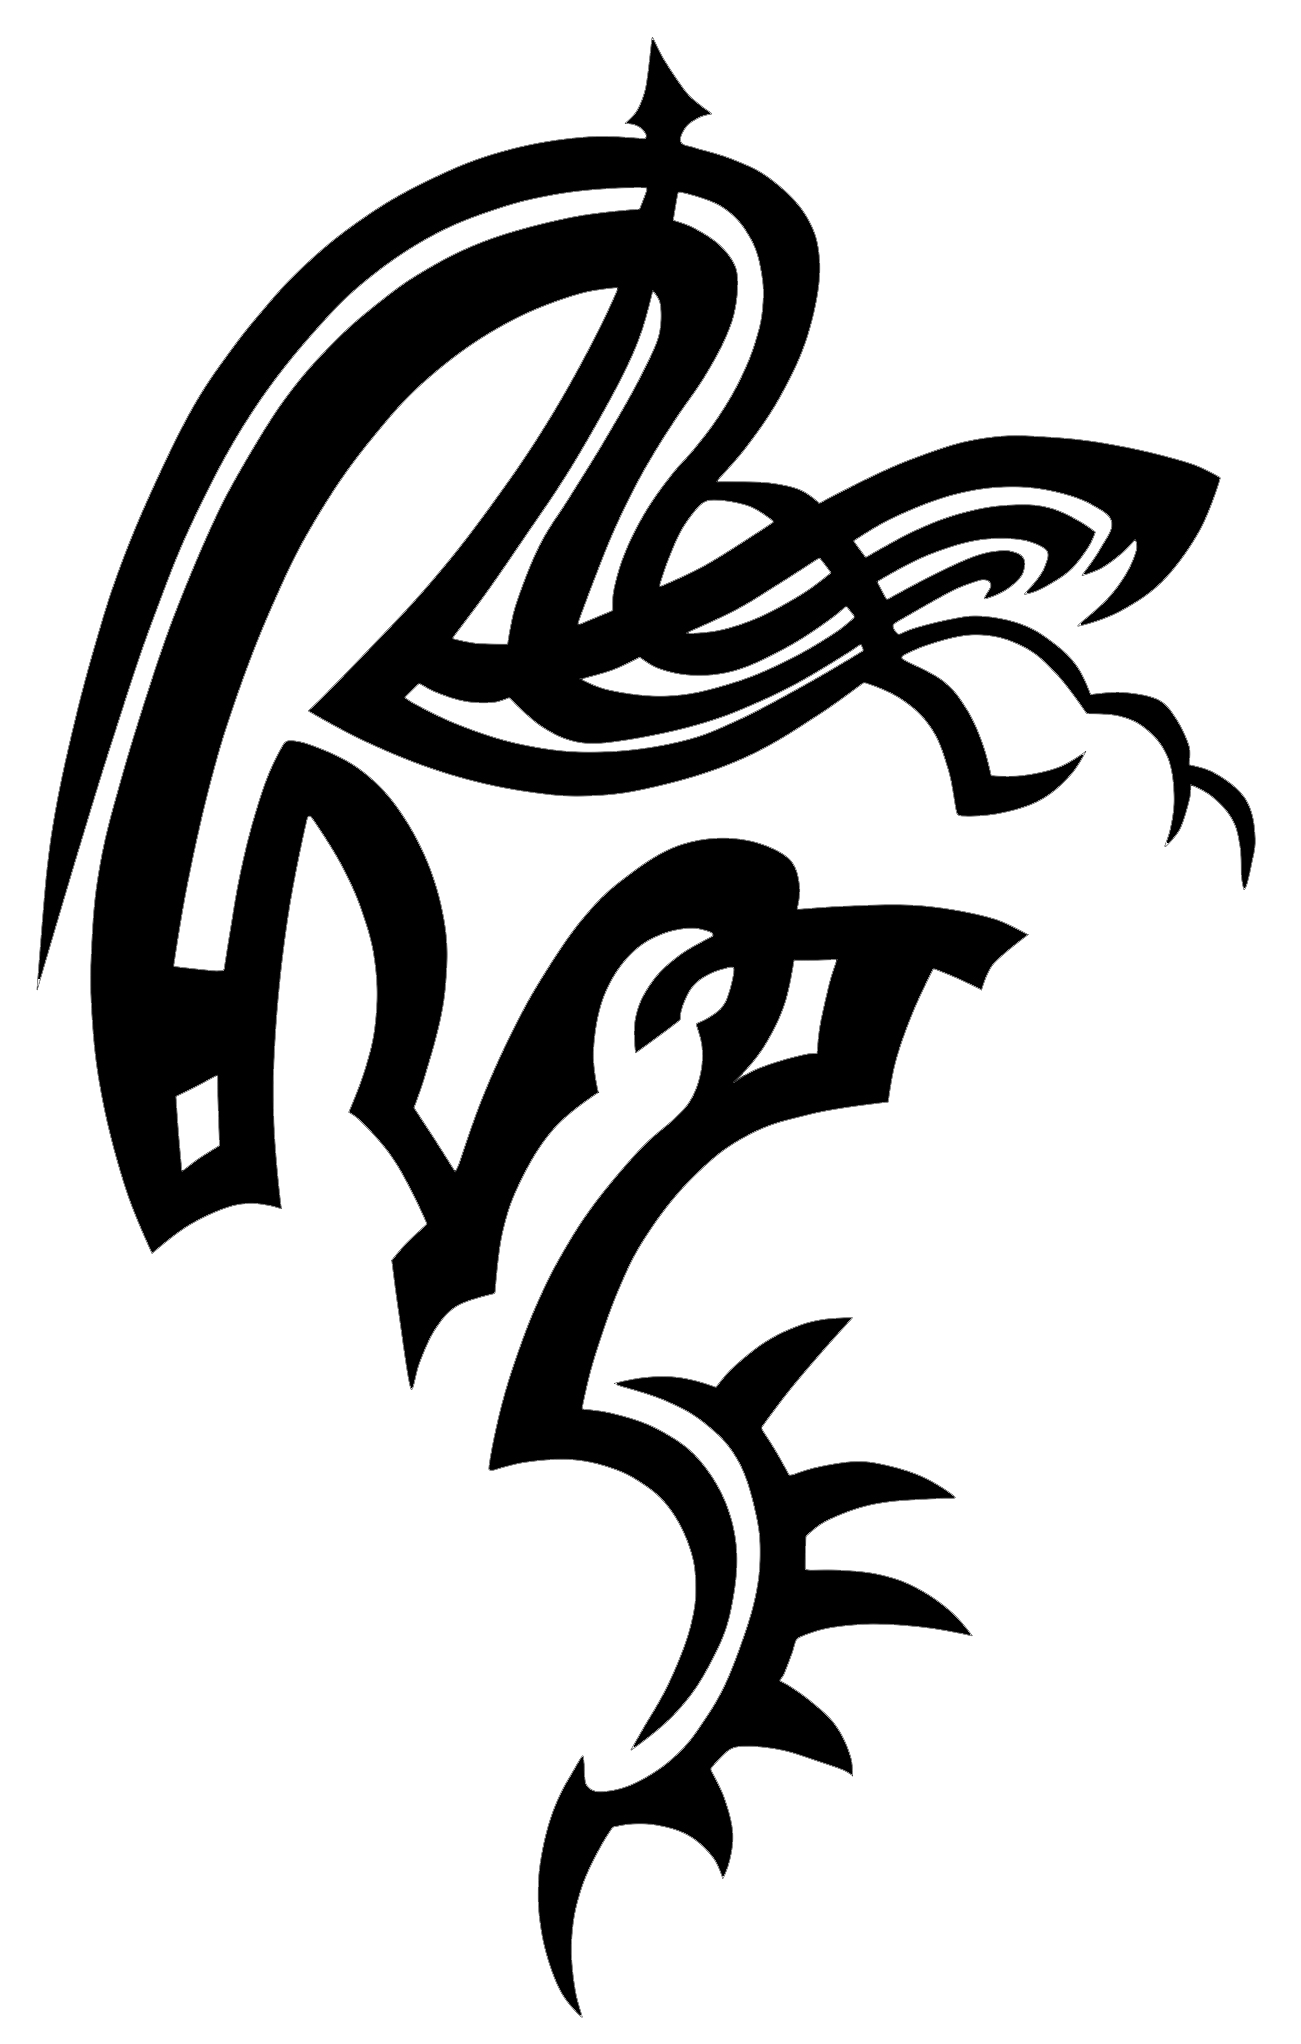 Snake Tattoo Transparent PNG Image